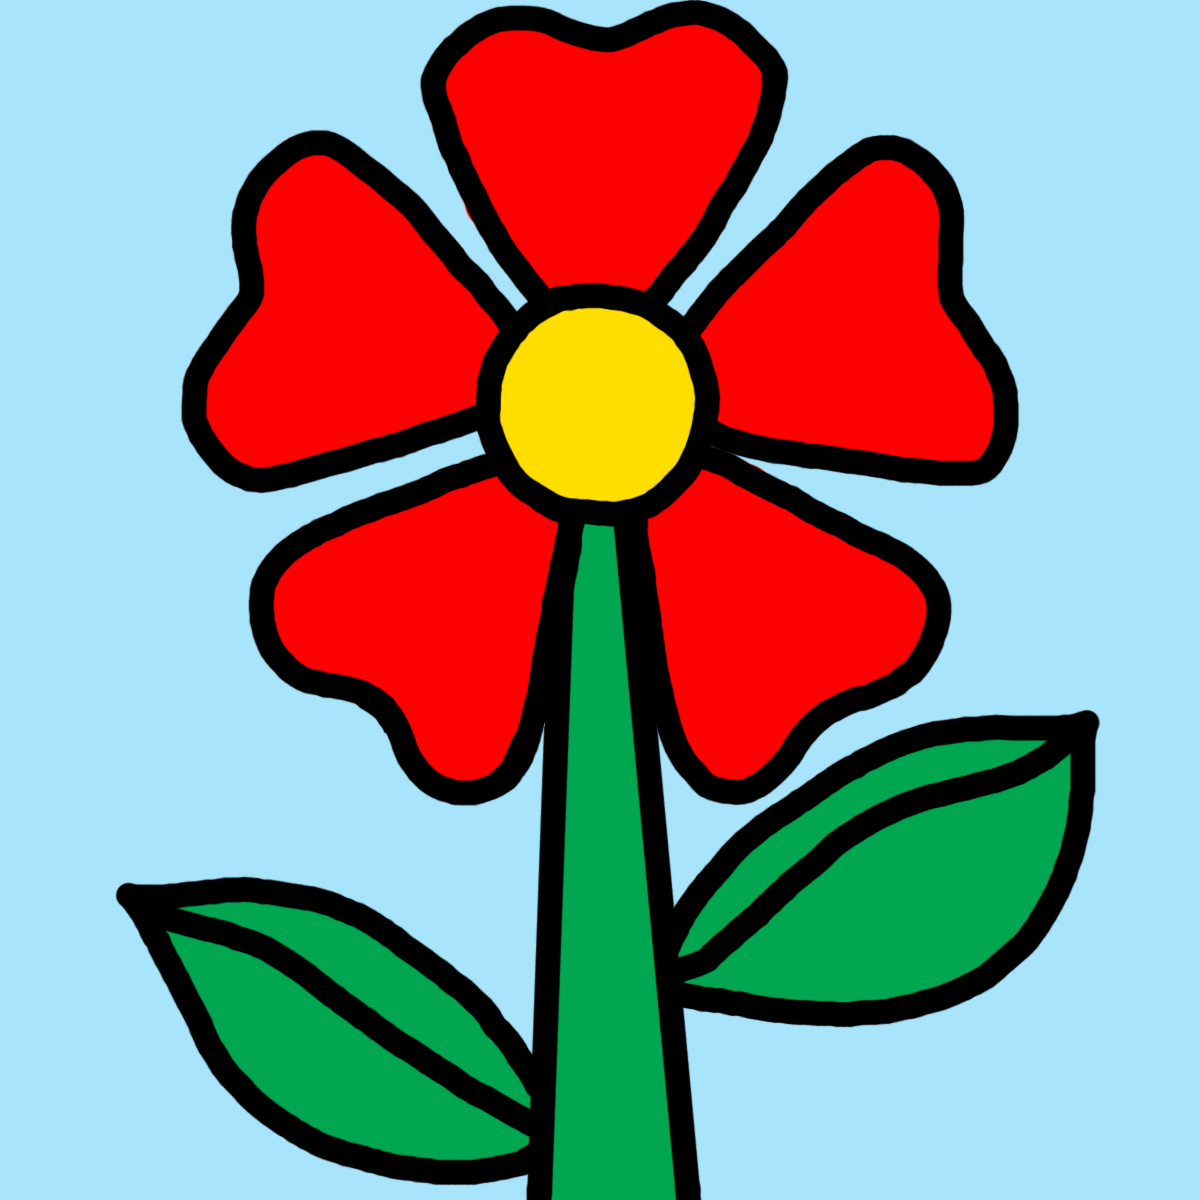 Growing Flower Clipart | Clipart Panda - Free Clipart Images